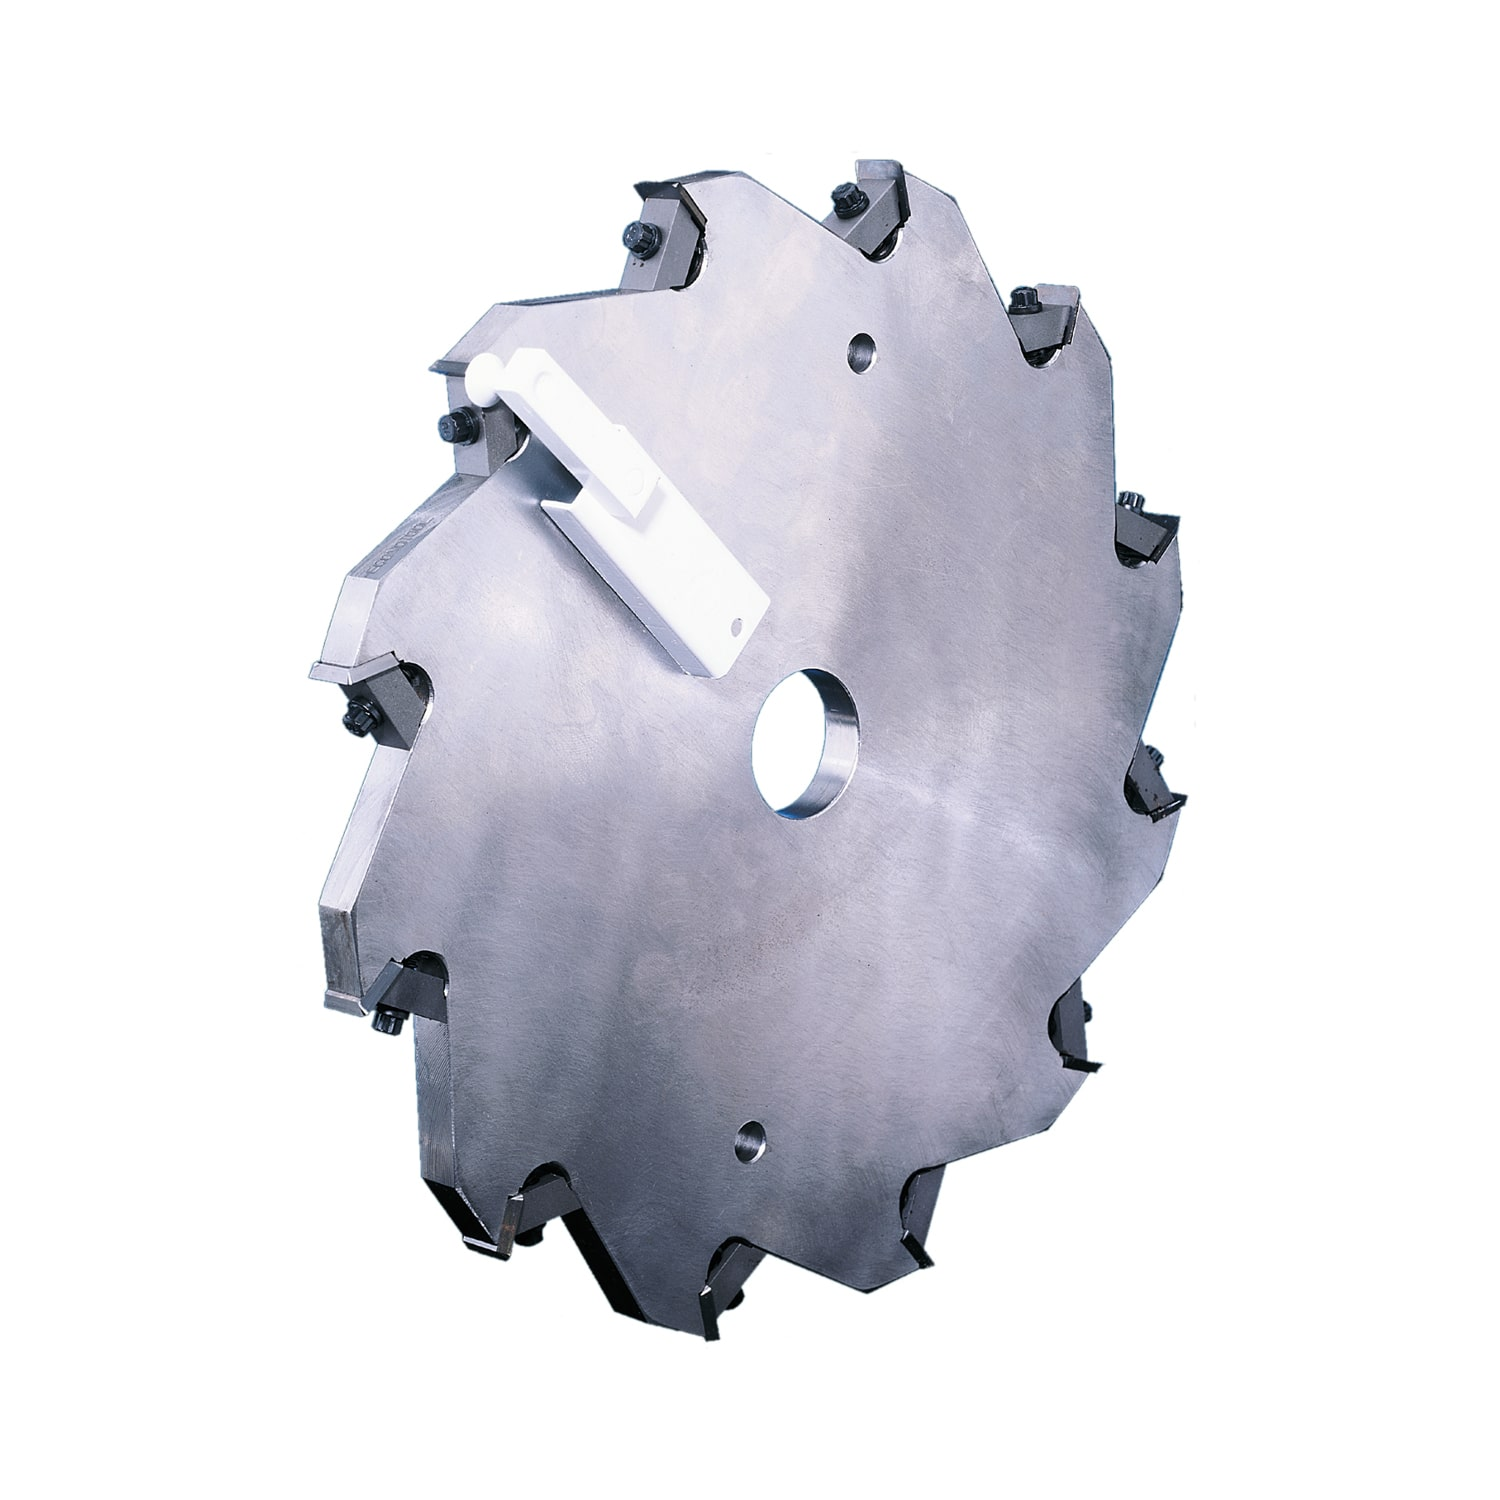 Side Head / Hogger Indexable Cutter With Replaceable Inserts